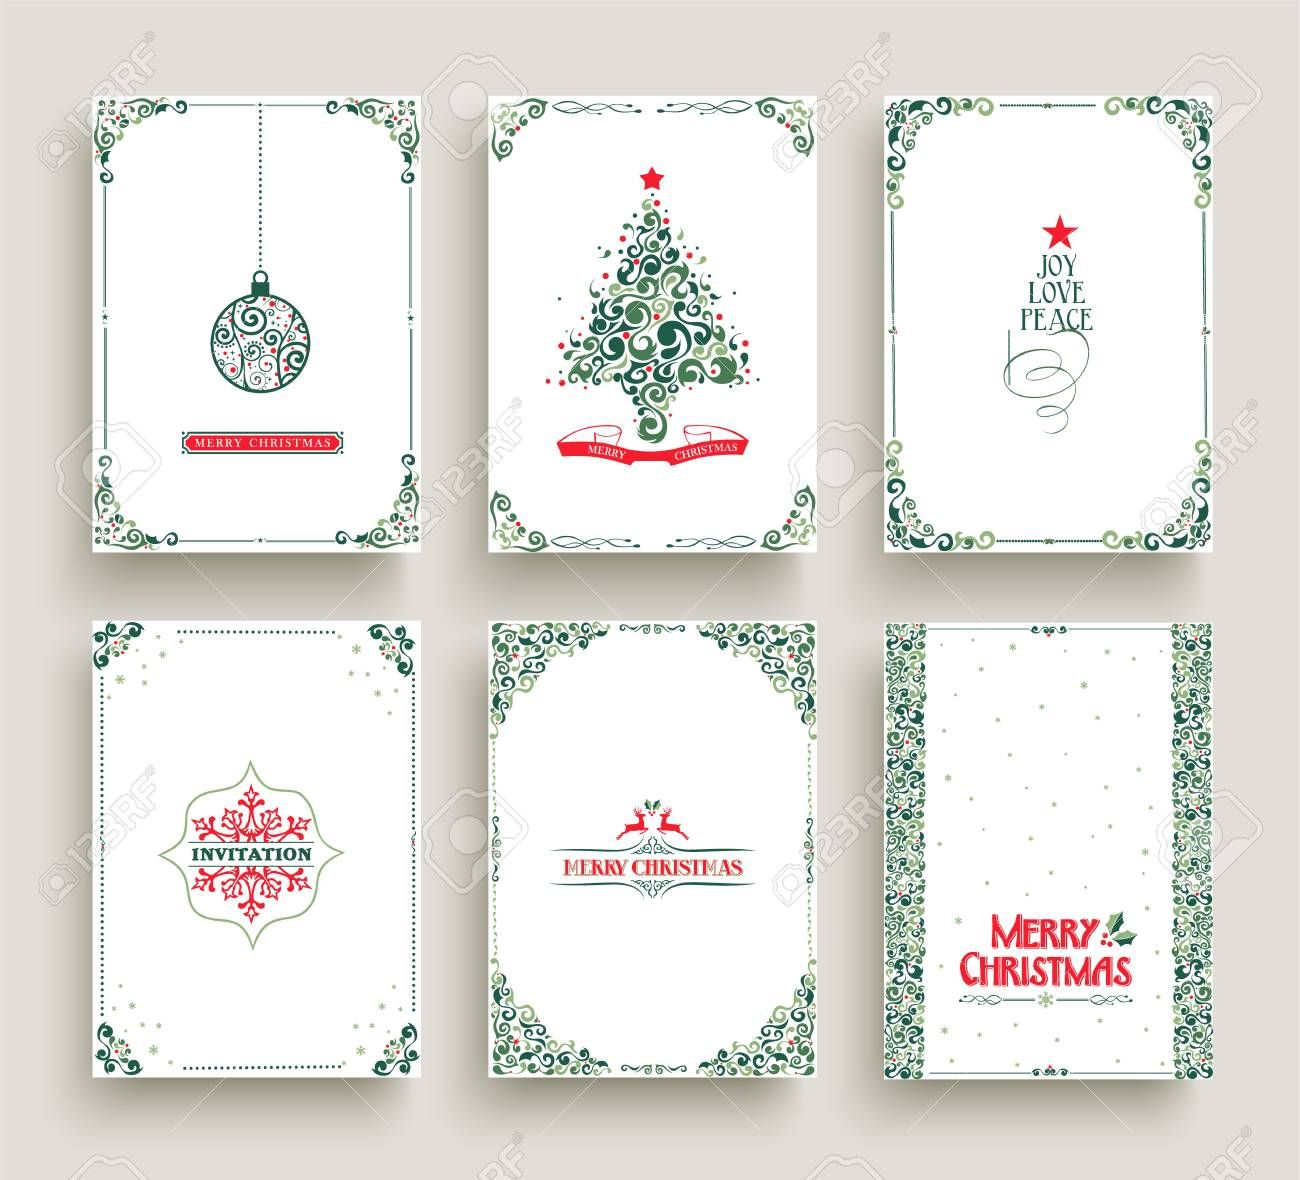 Merry Christmas Set Of Vintage Holiday Greeting Card Templates Retro Style Collection Vintage Holiday Greeting Cards Greeting Card Template Christmas Settings